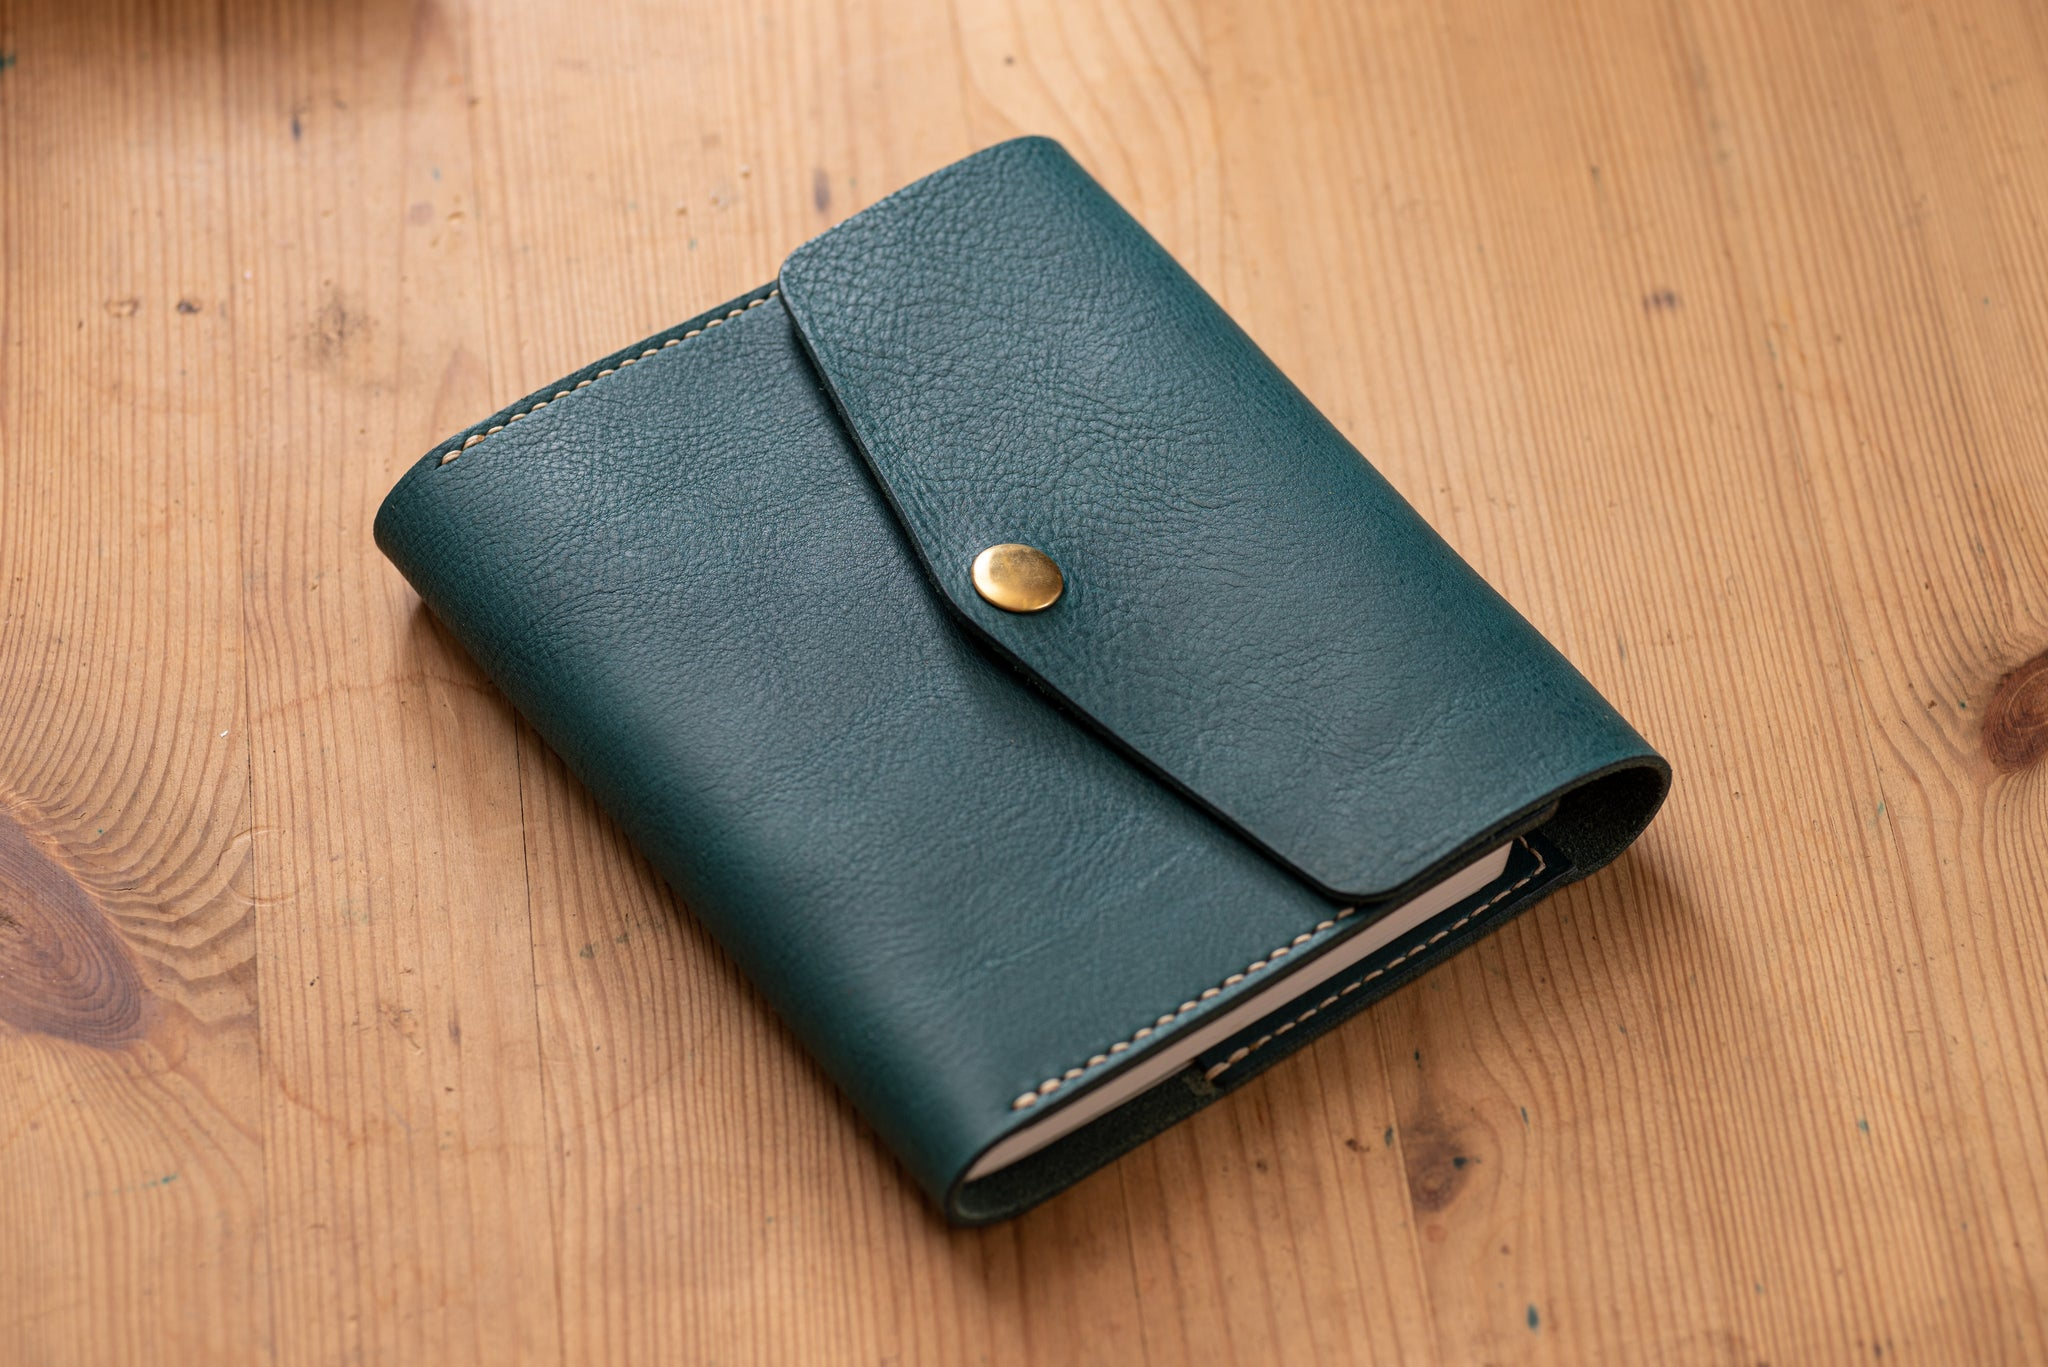 6 COLORS - A6/Hobonichi/Midori MD Navy Blue Trifold Pebbled Leather Notebook Cover - Eternal Leather Goods